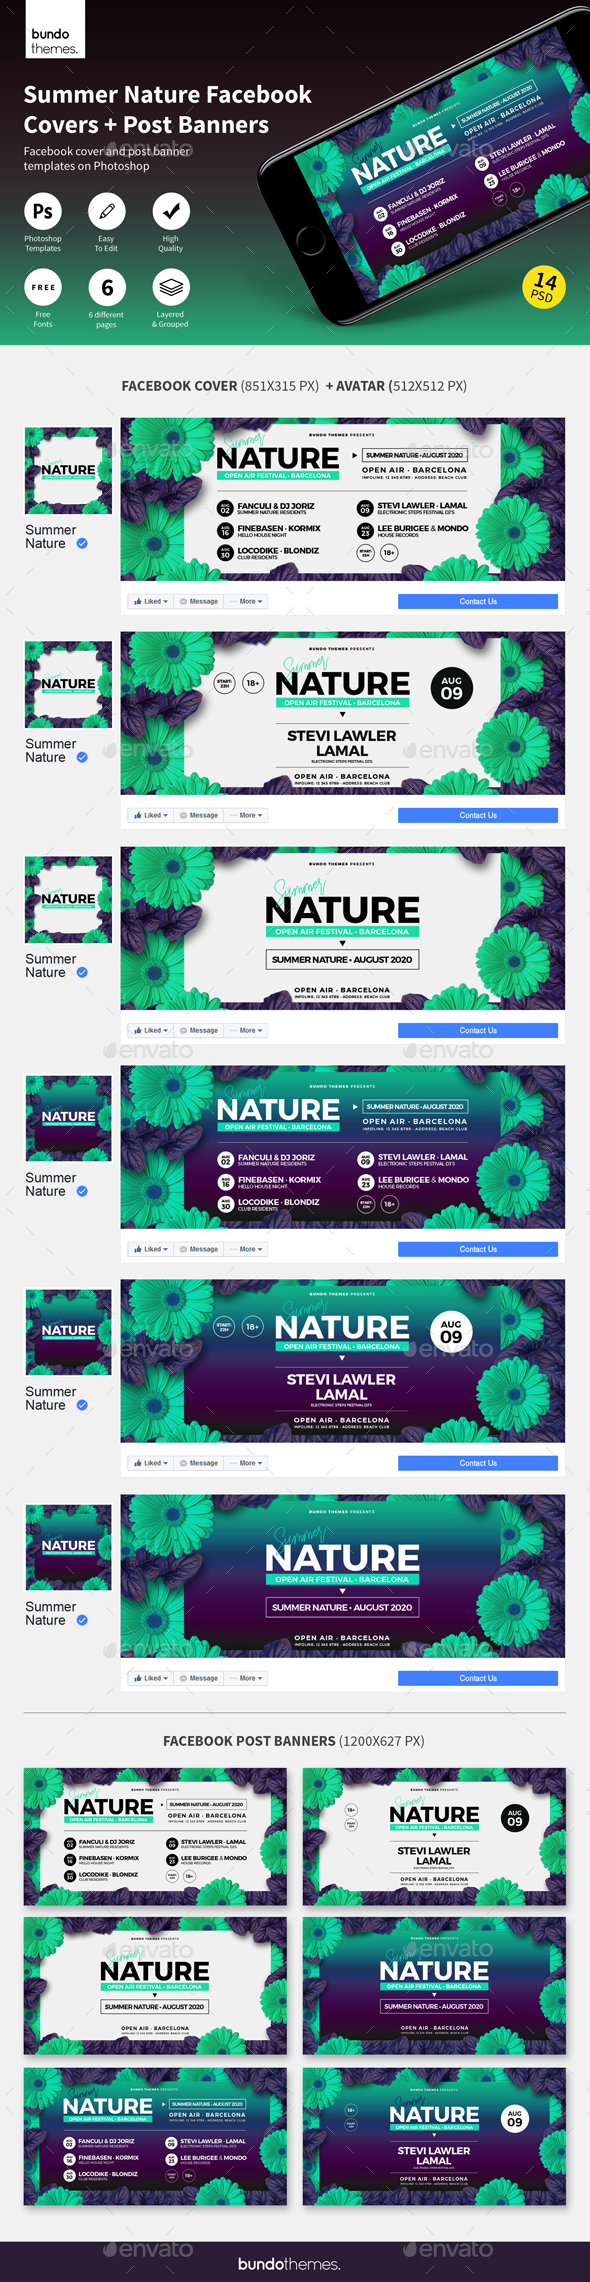 Summer Nature Facebook Covers and Banners